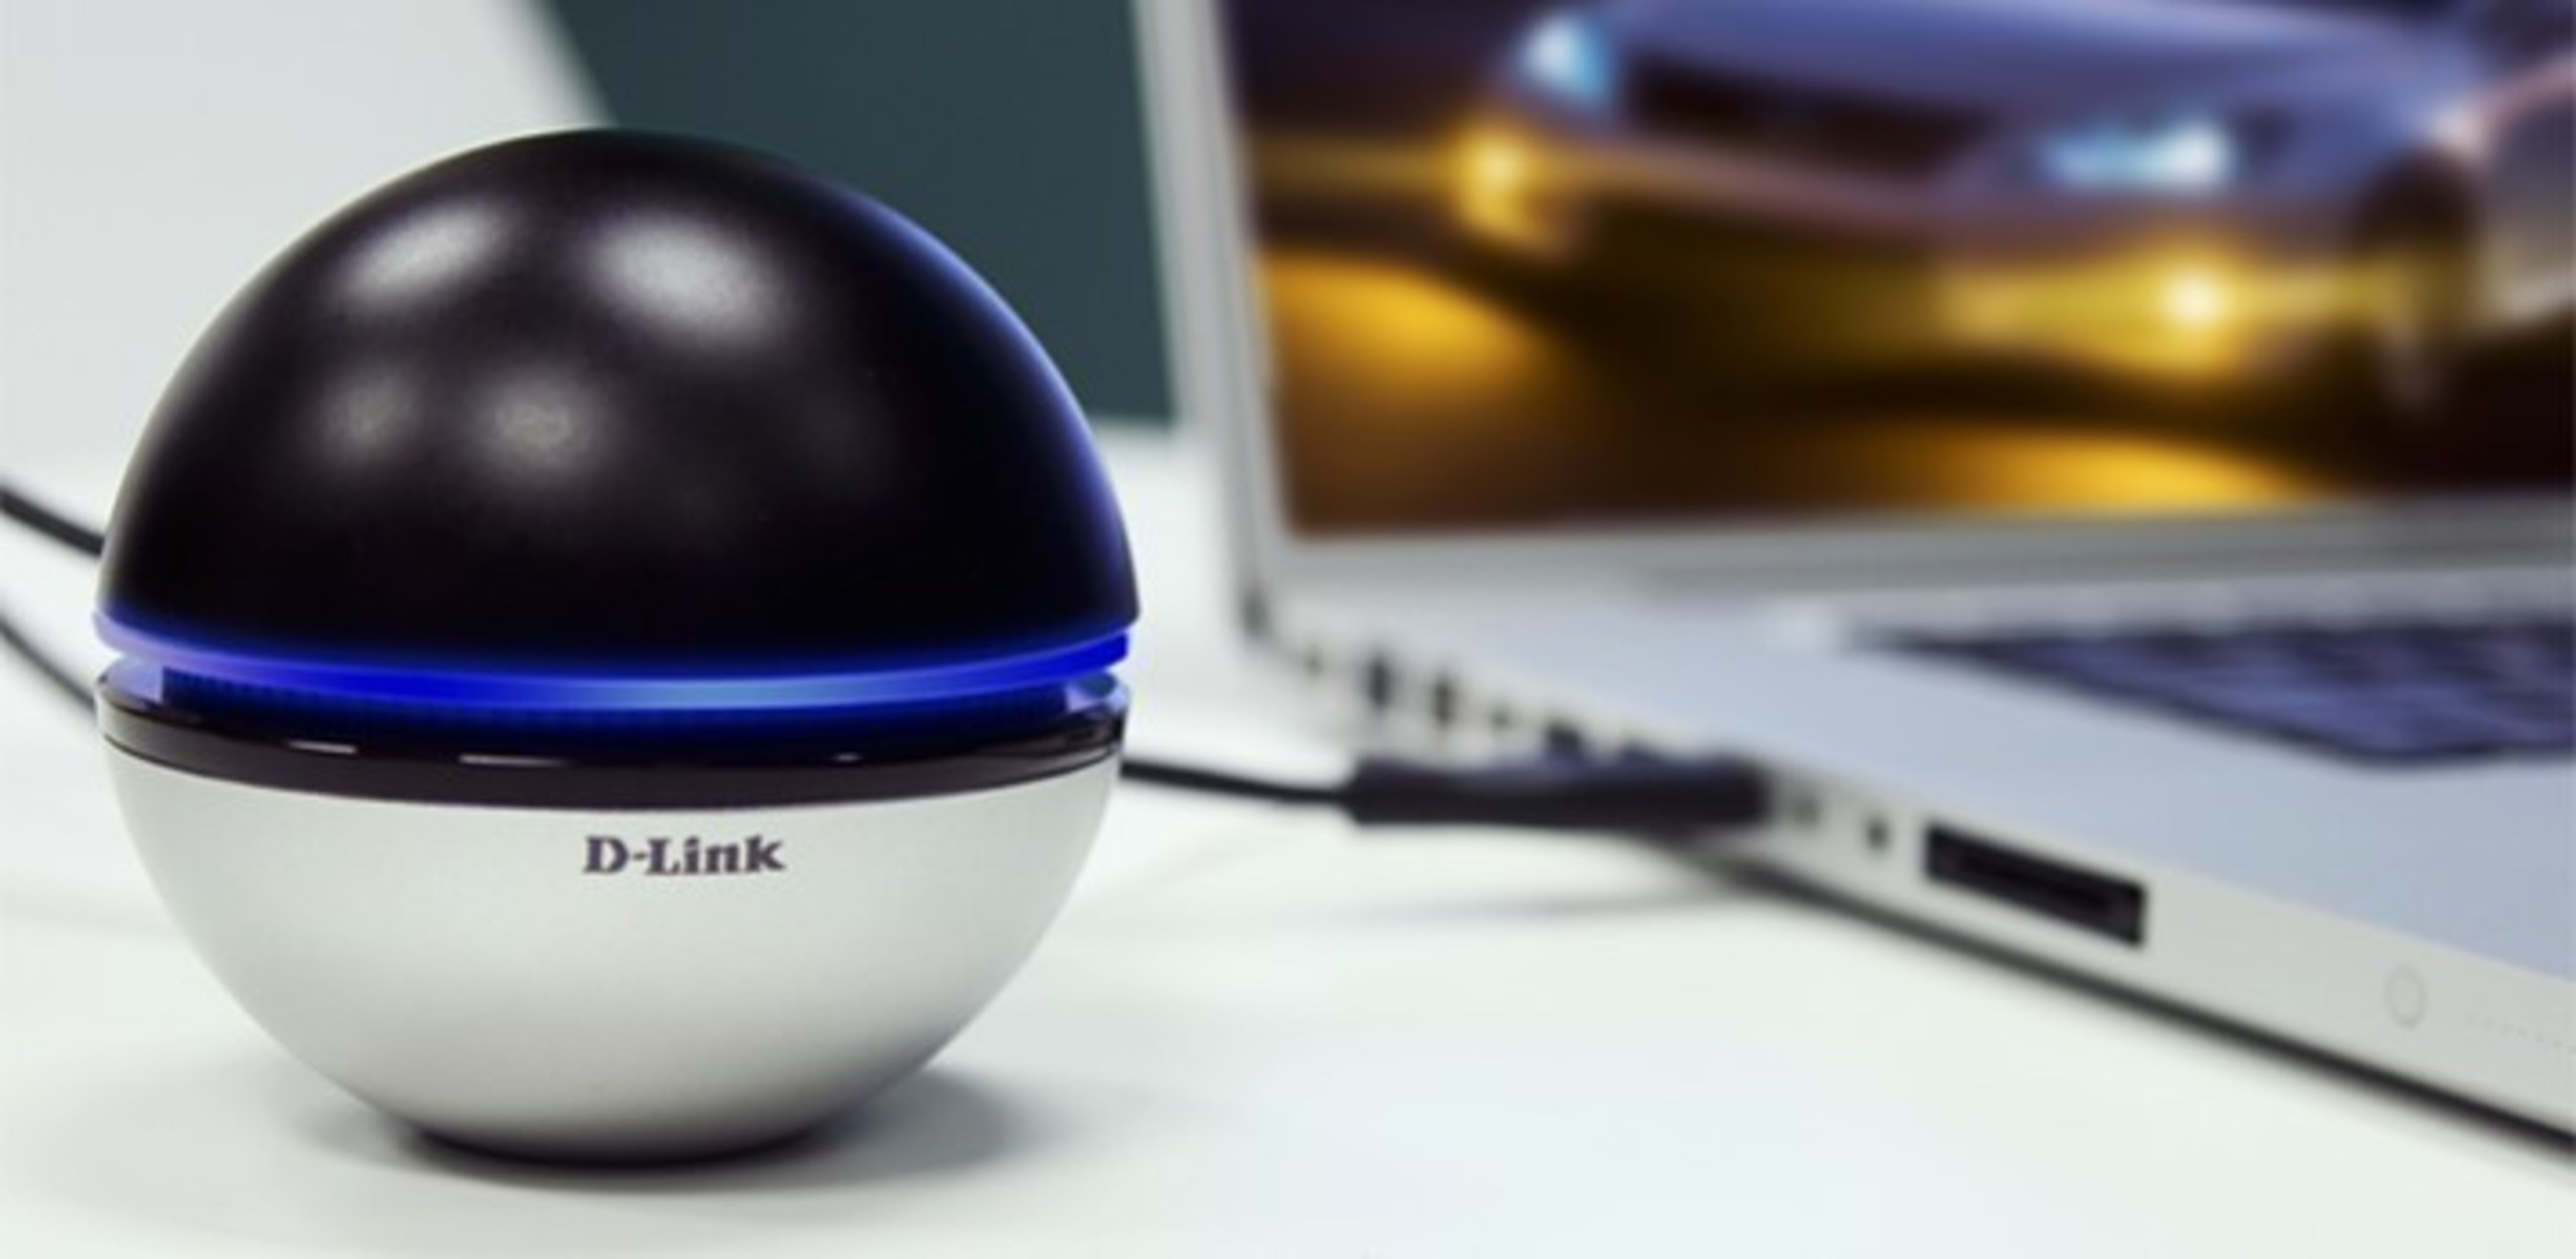 The D-Link AC1900 Wi-Fi USB Adapter (DWA-192) enables users to upgrade a desktop PC to the latest generation wireless AC technology.